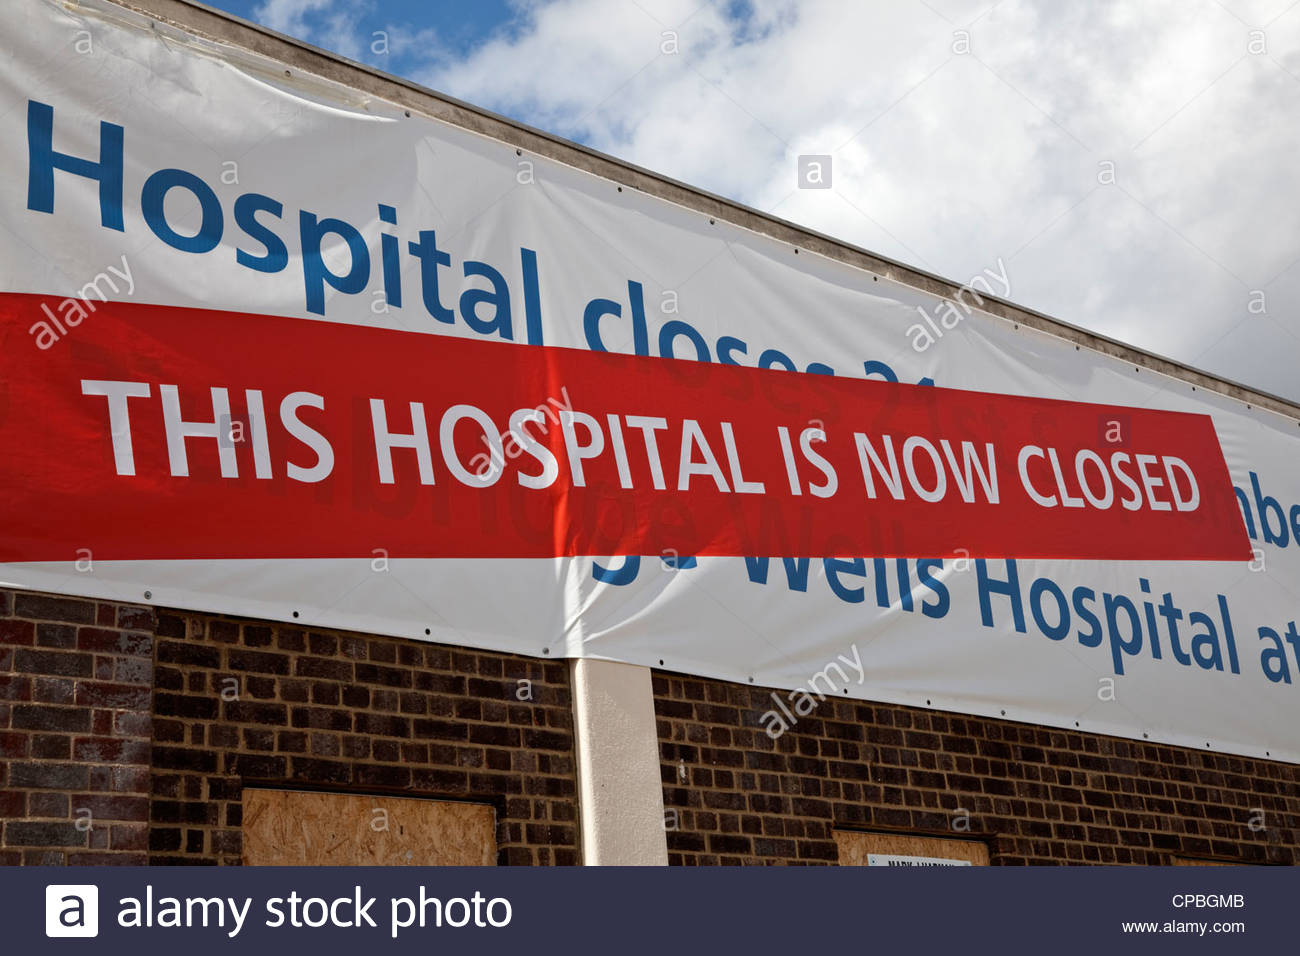 Hospital Closure notice in Tunbridge Wells, Kent due to relocation to new premises - Stock Image